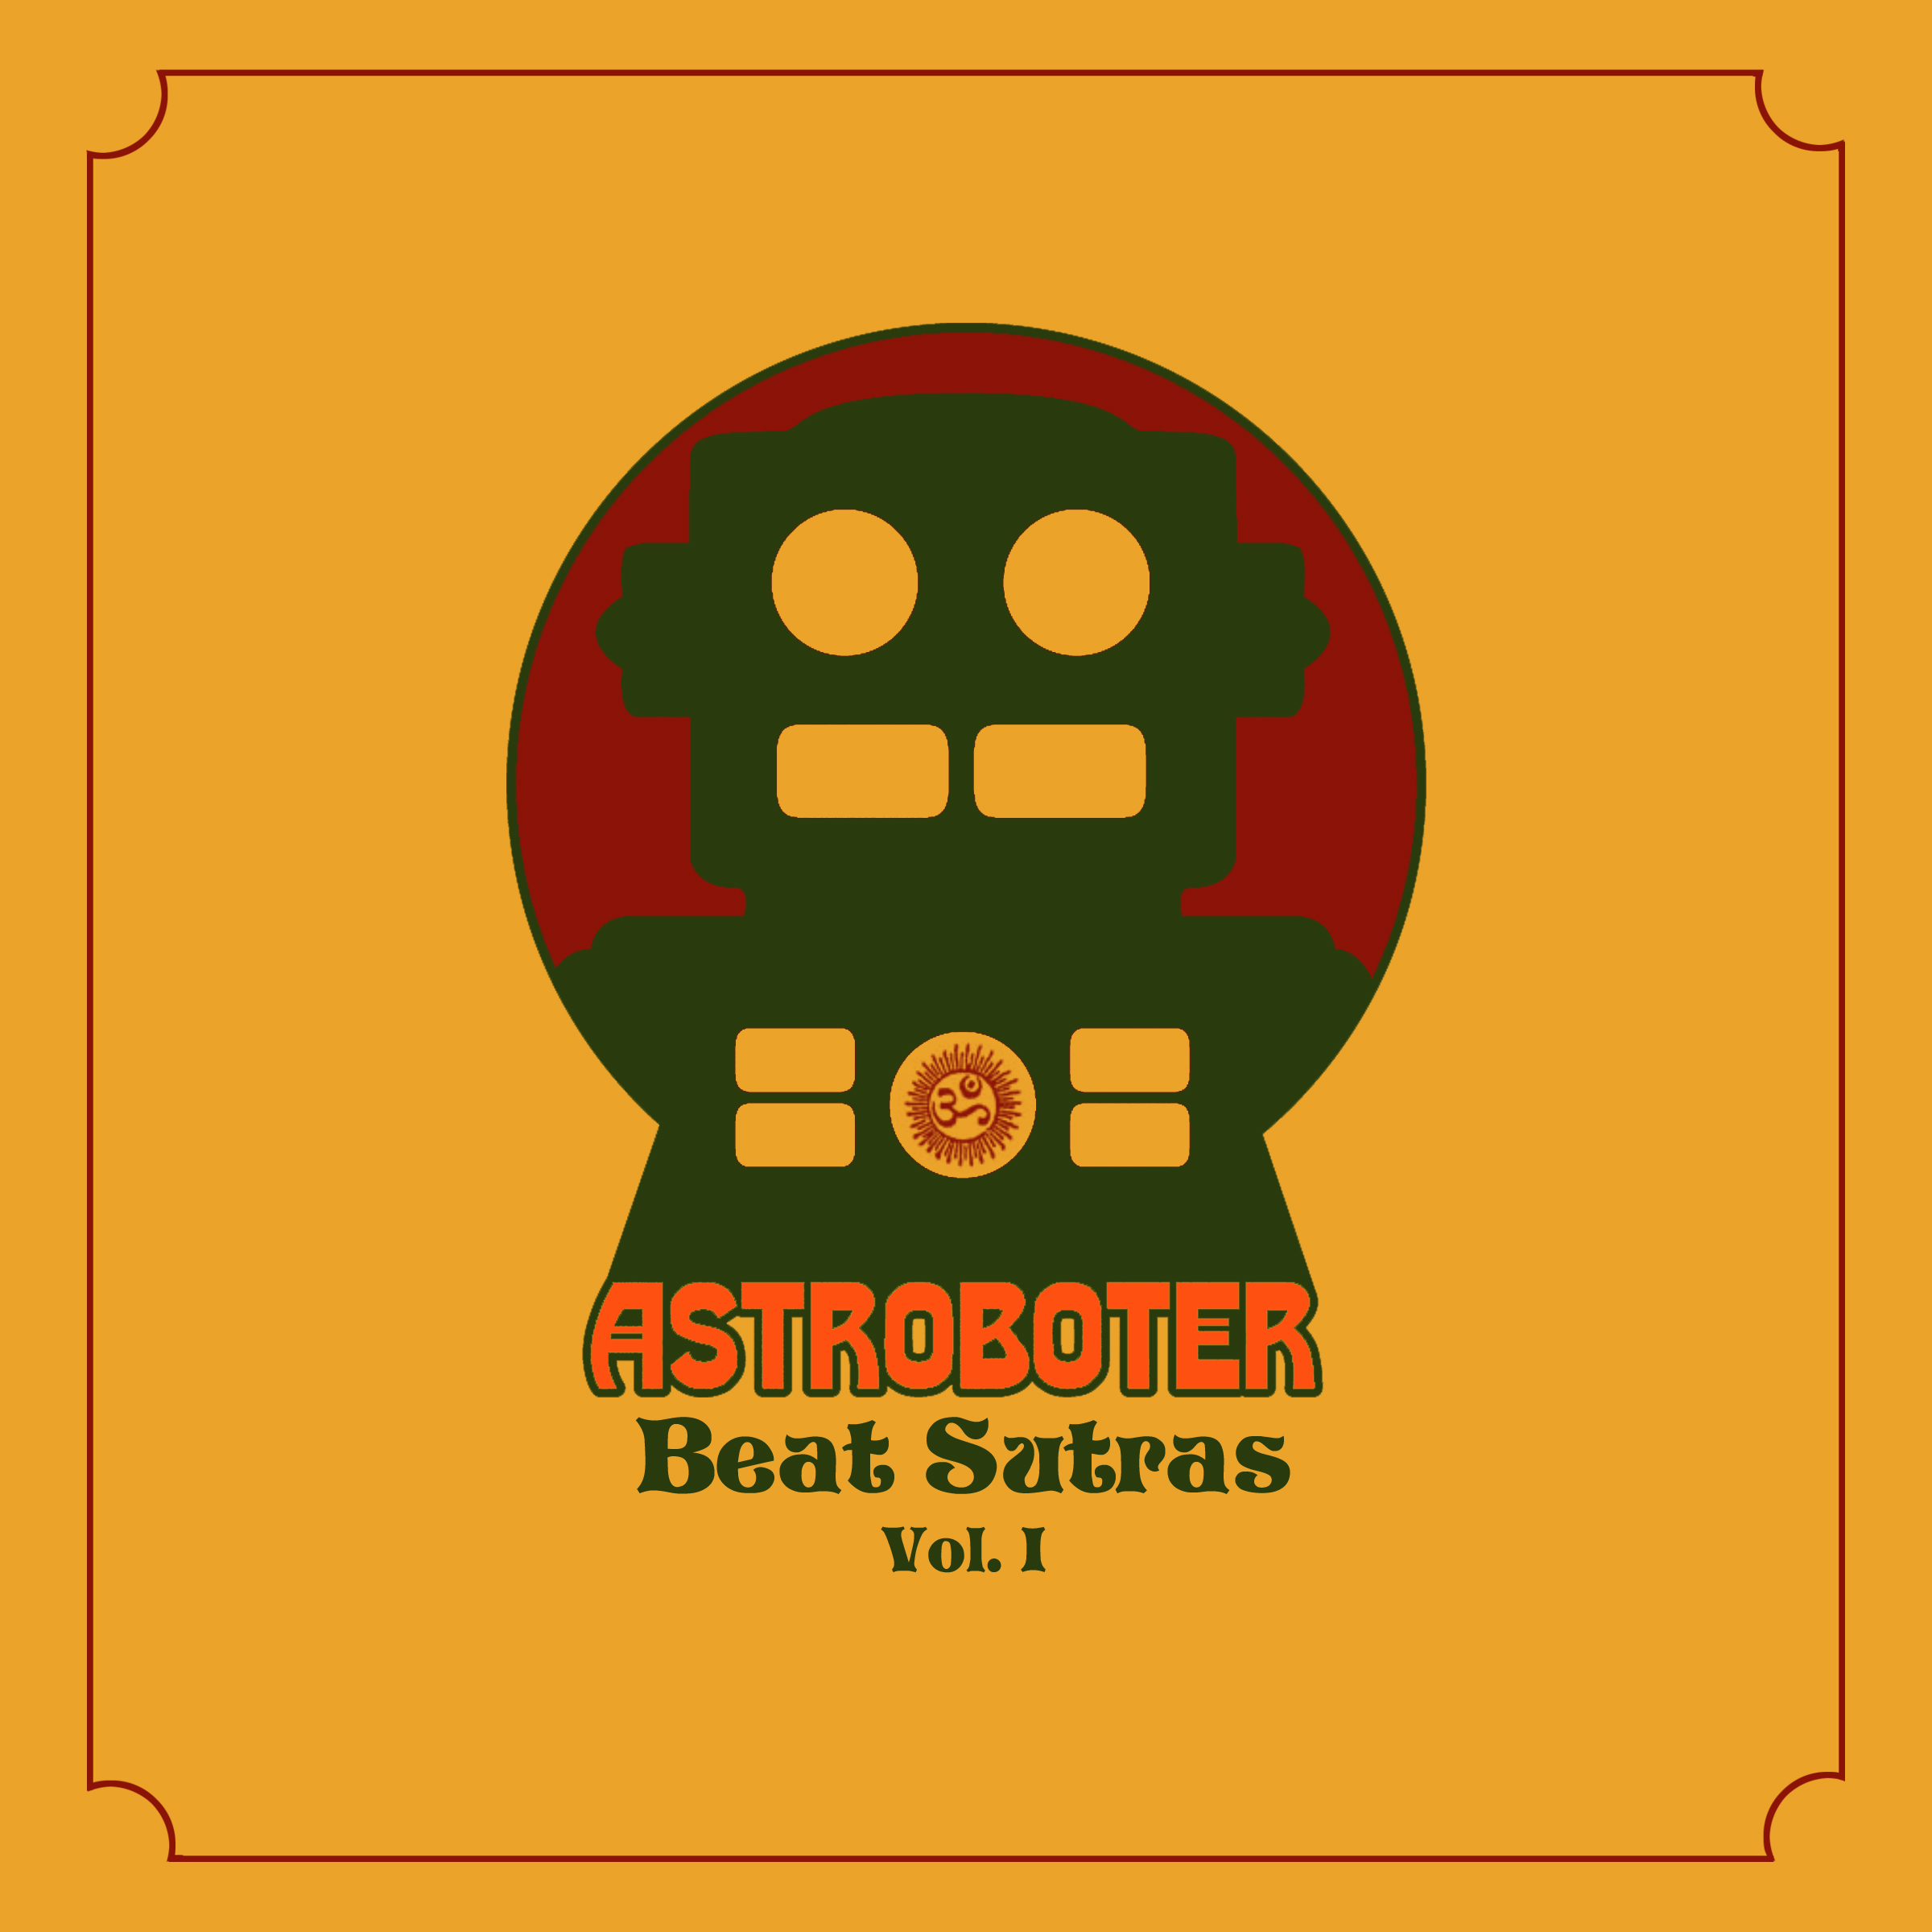 Free Download: Astroboter – Beat Sutras Vol. I